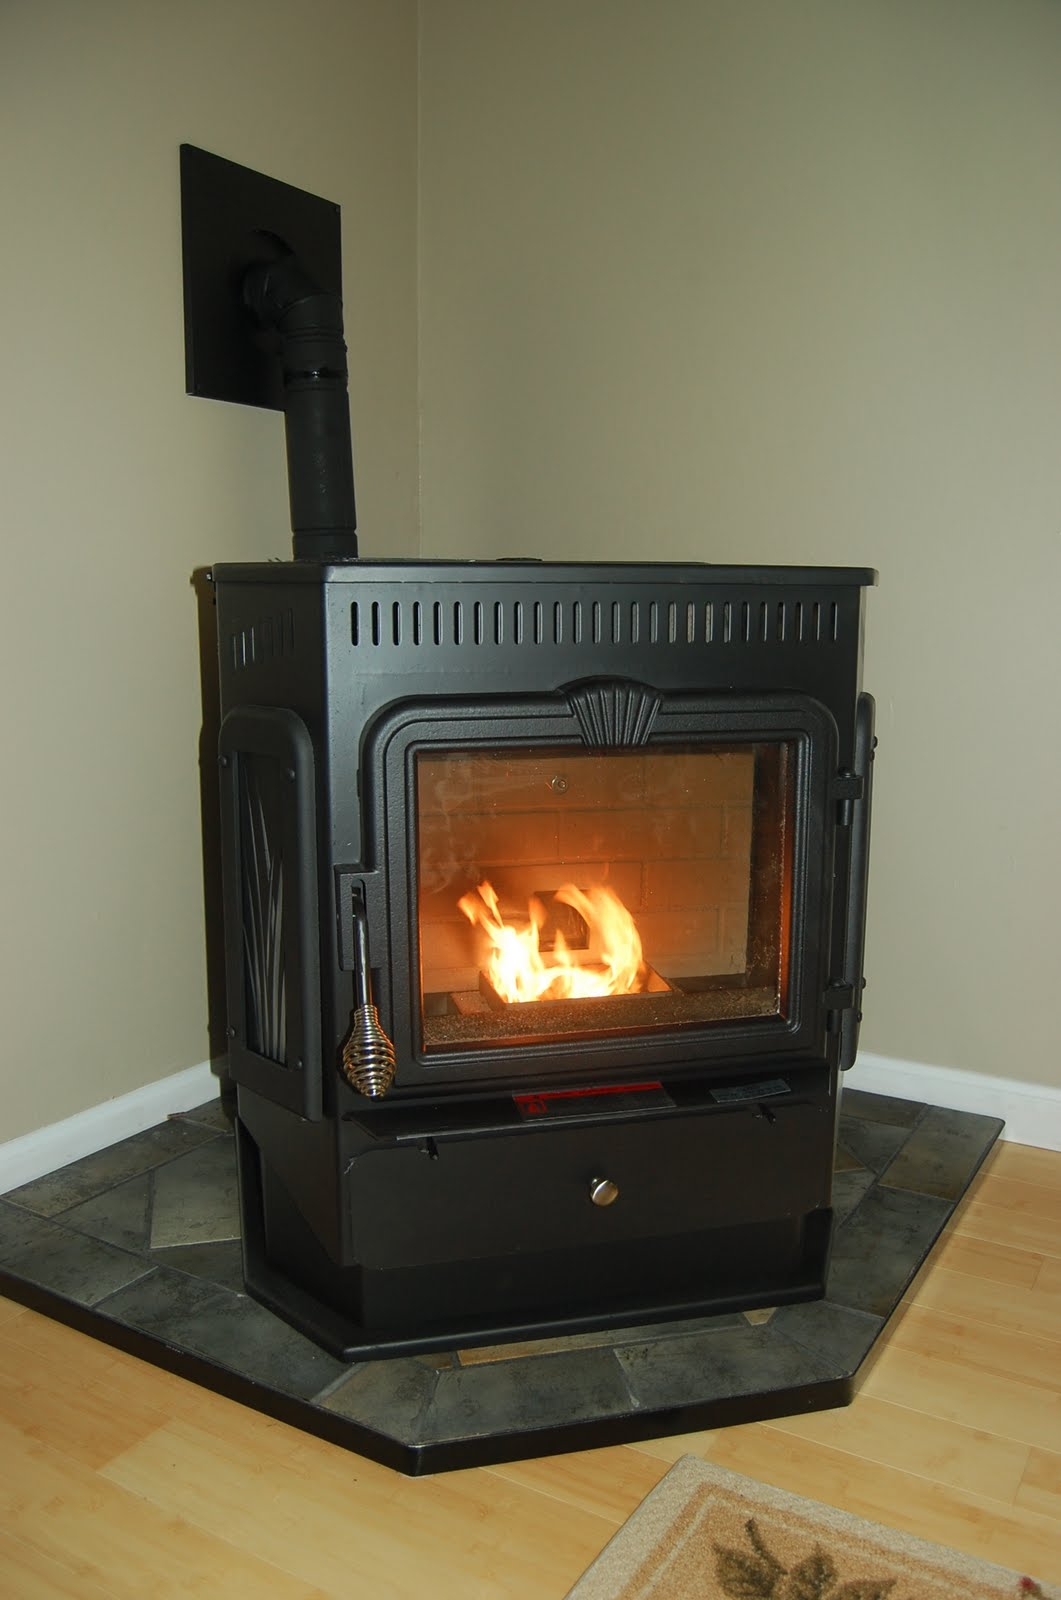 86 Wood Burning Stove Pipe Kit How To Install